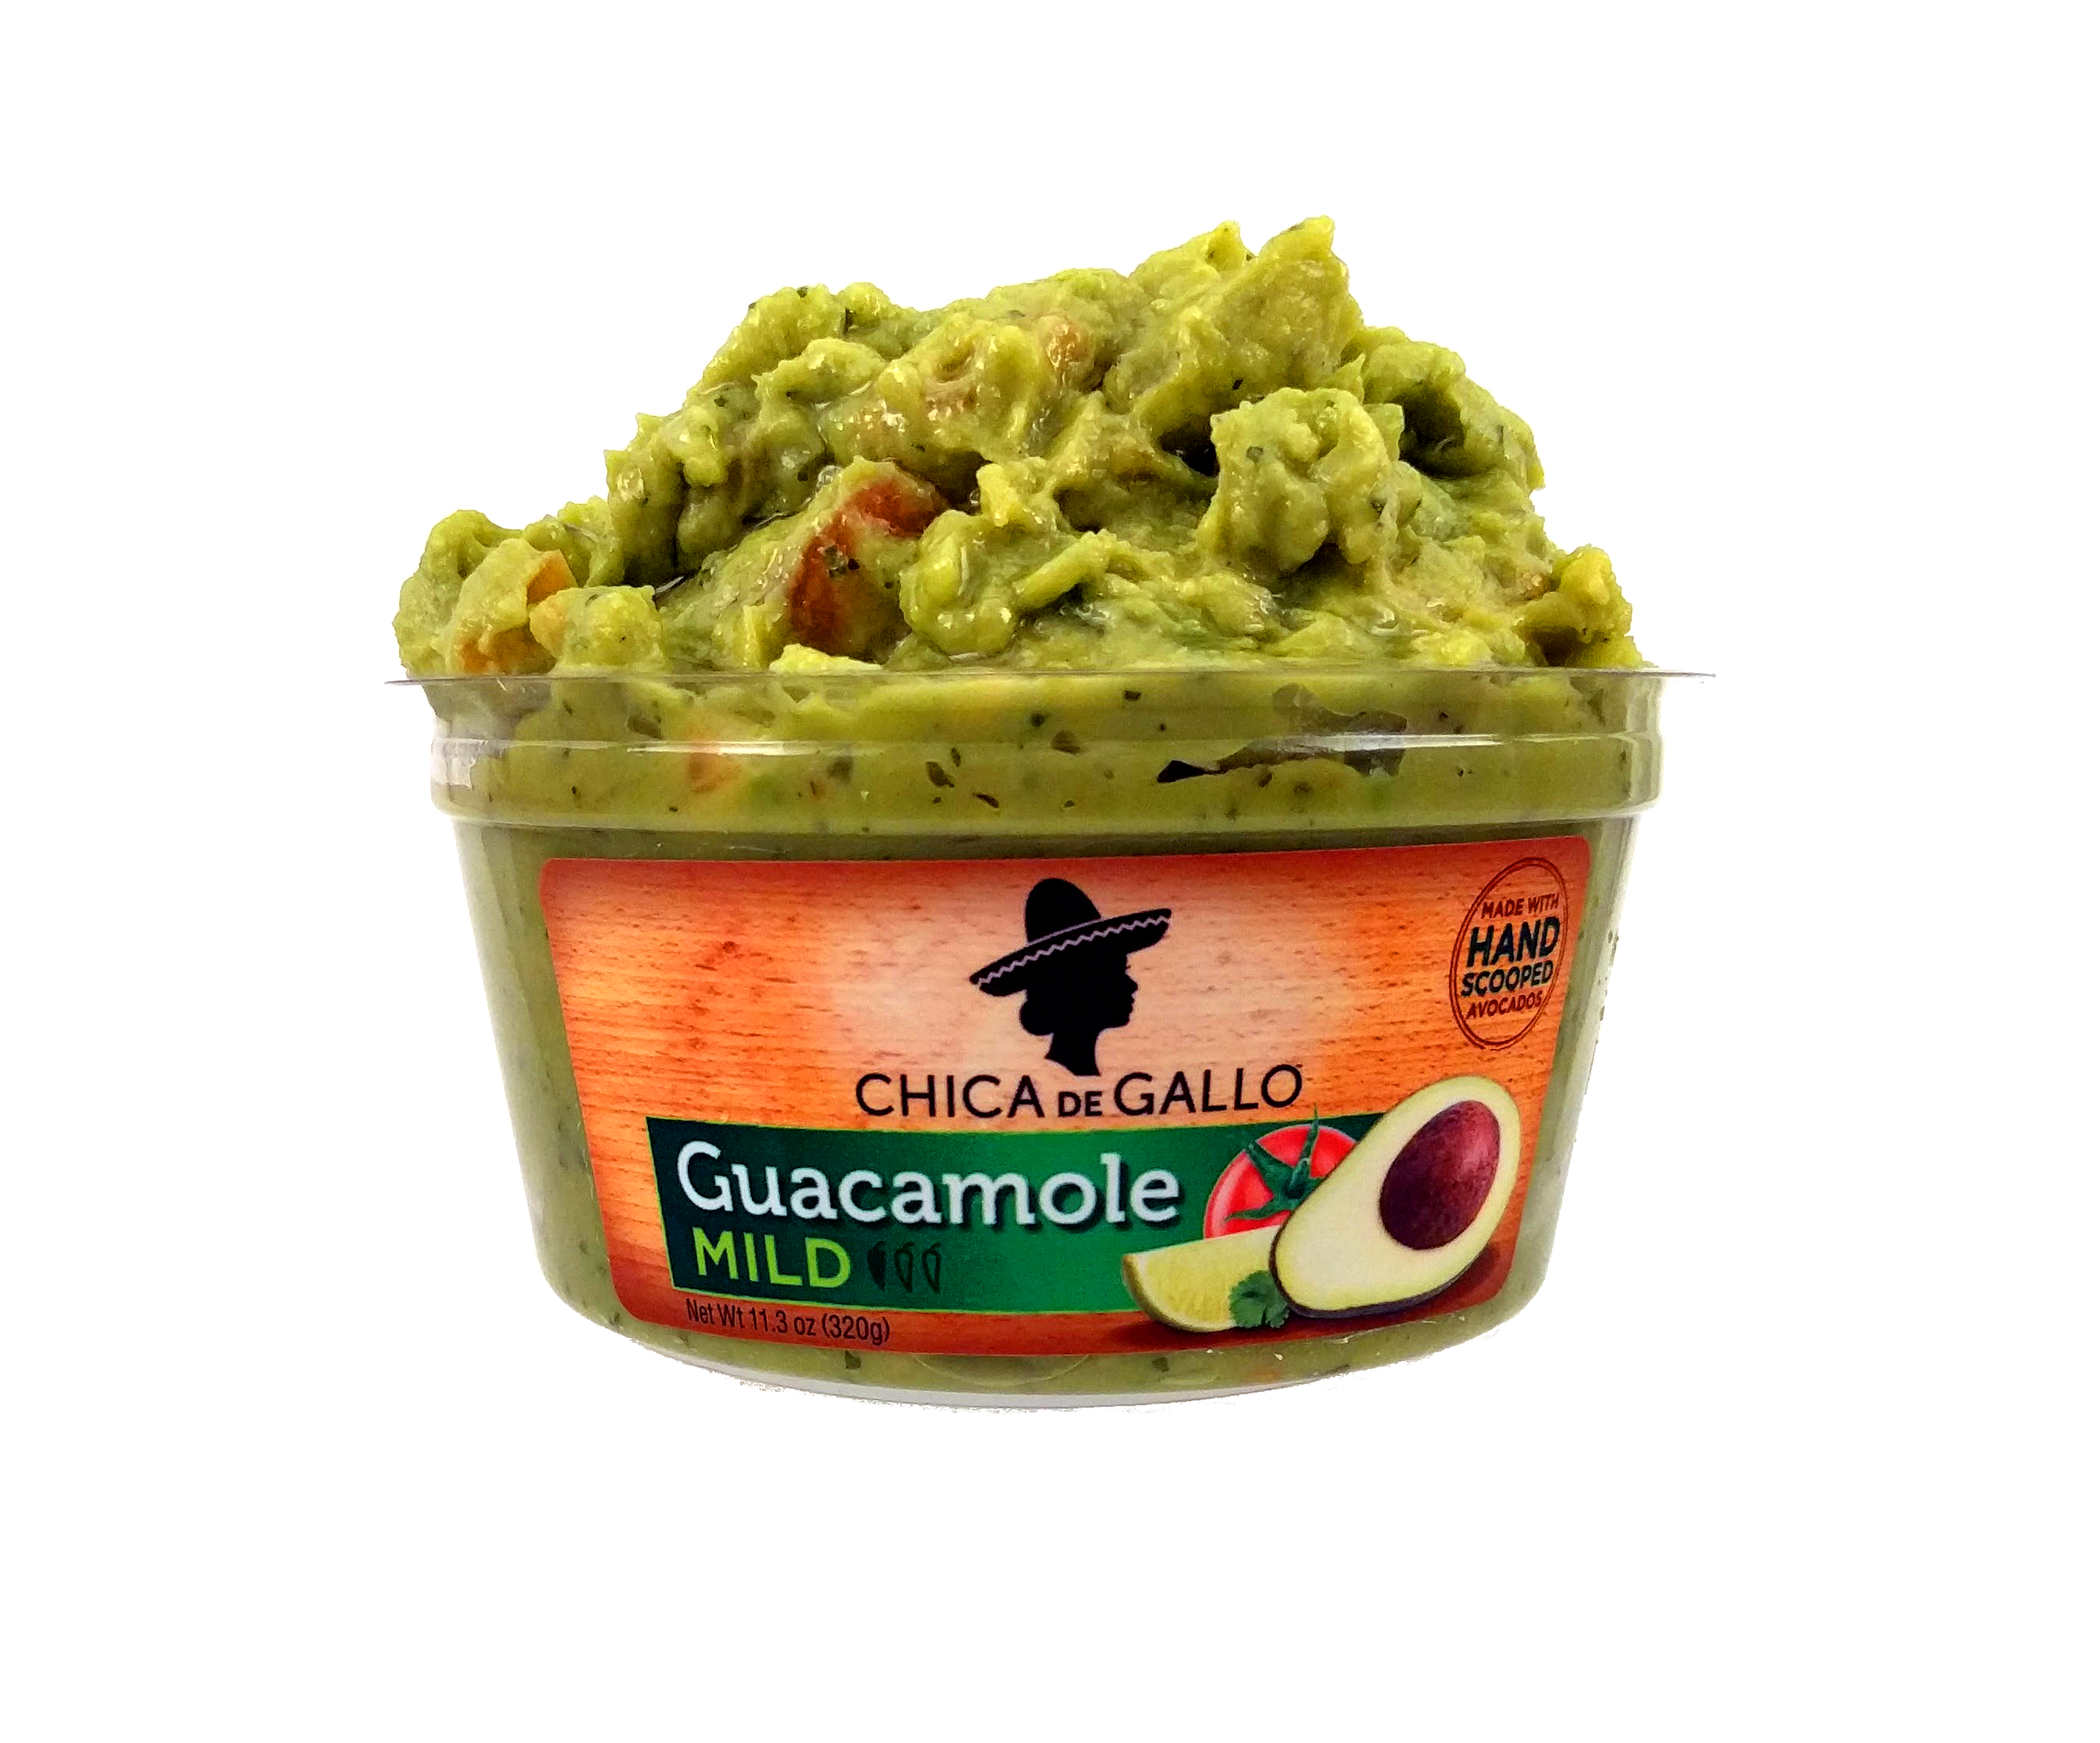 MILD GUACAMOLE - Perfectly mild avocado perfection.Ingredients: Avocado, Tomatoes, Onions, Lime Juice, Peppers, Sea Salt, Garlic, CilantroAvailable Sizes: 11.3oz and 6.6oz